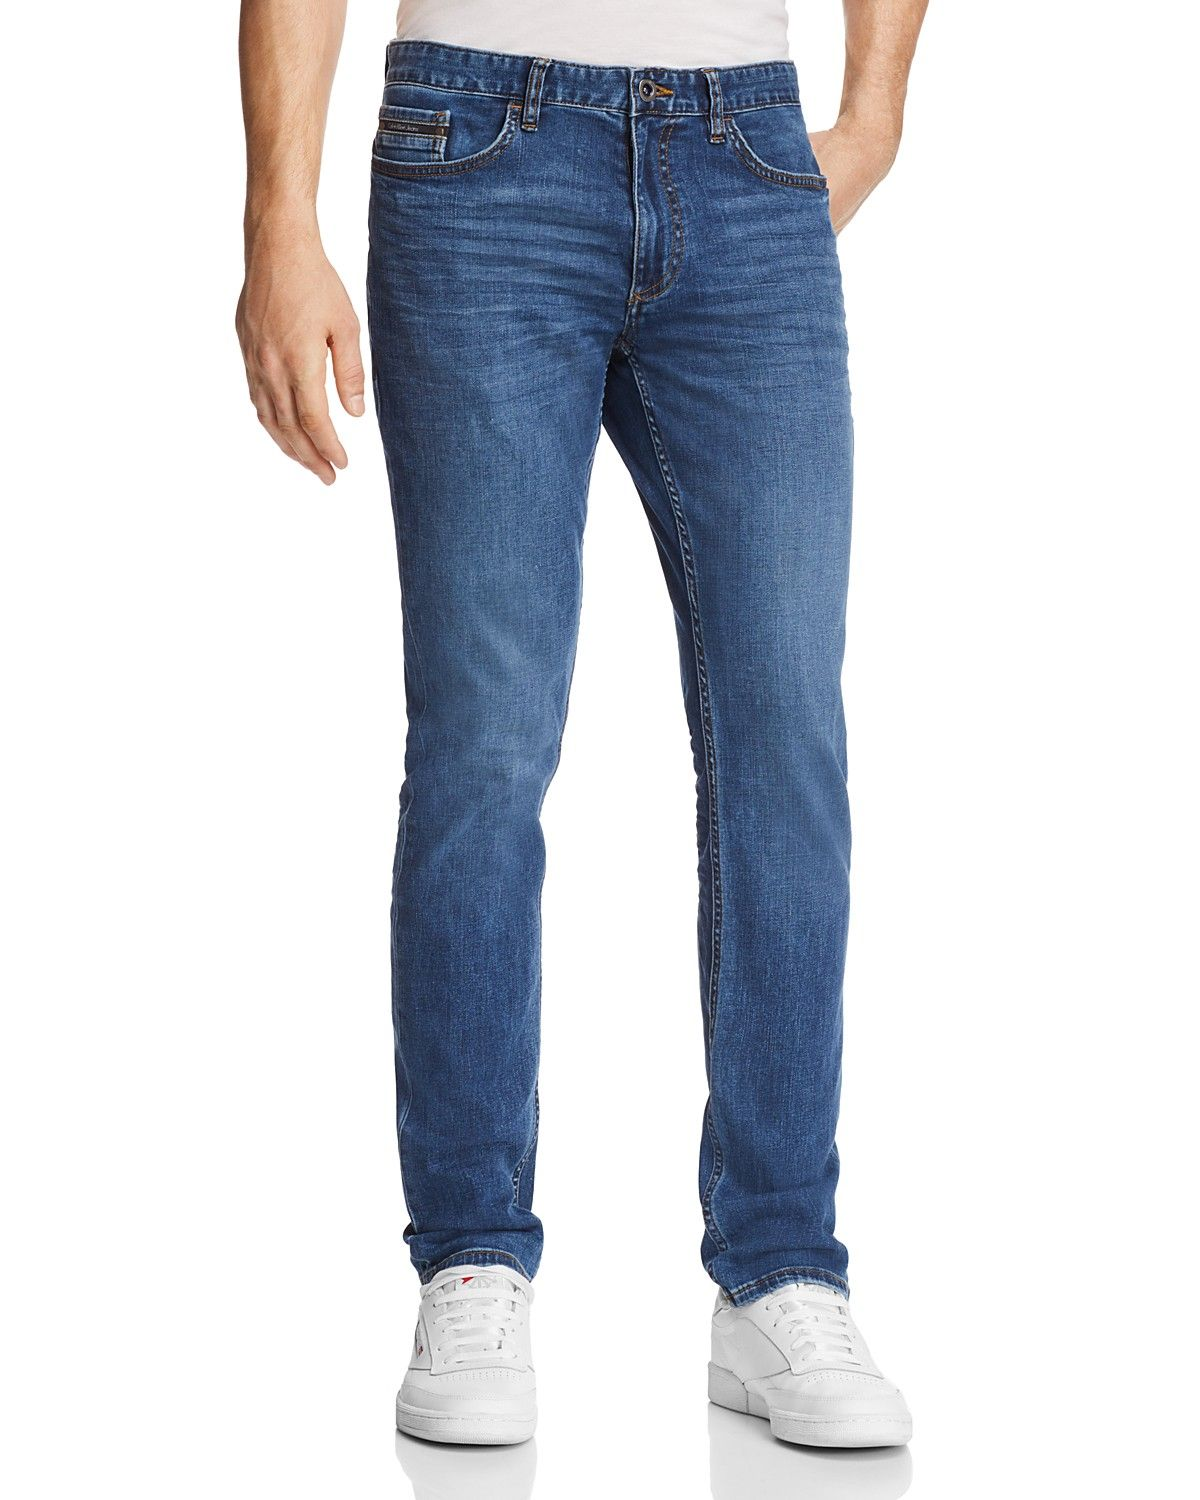 Calvin Klein denim sale